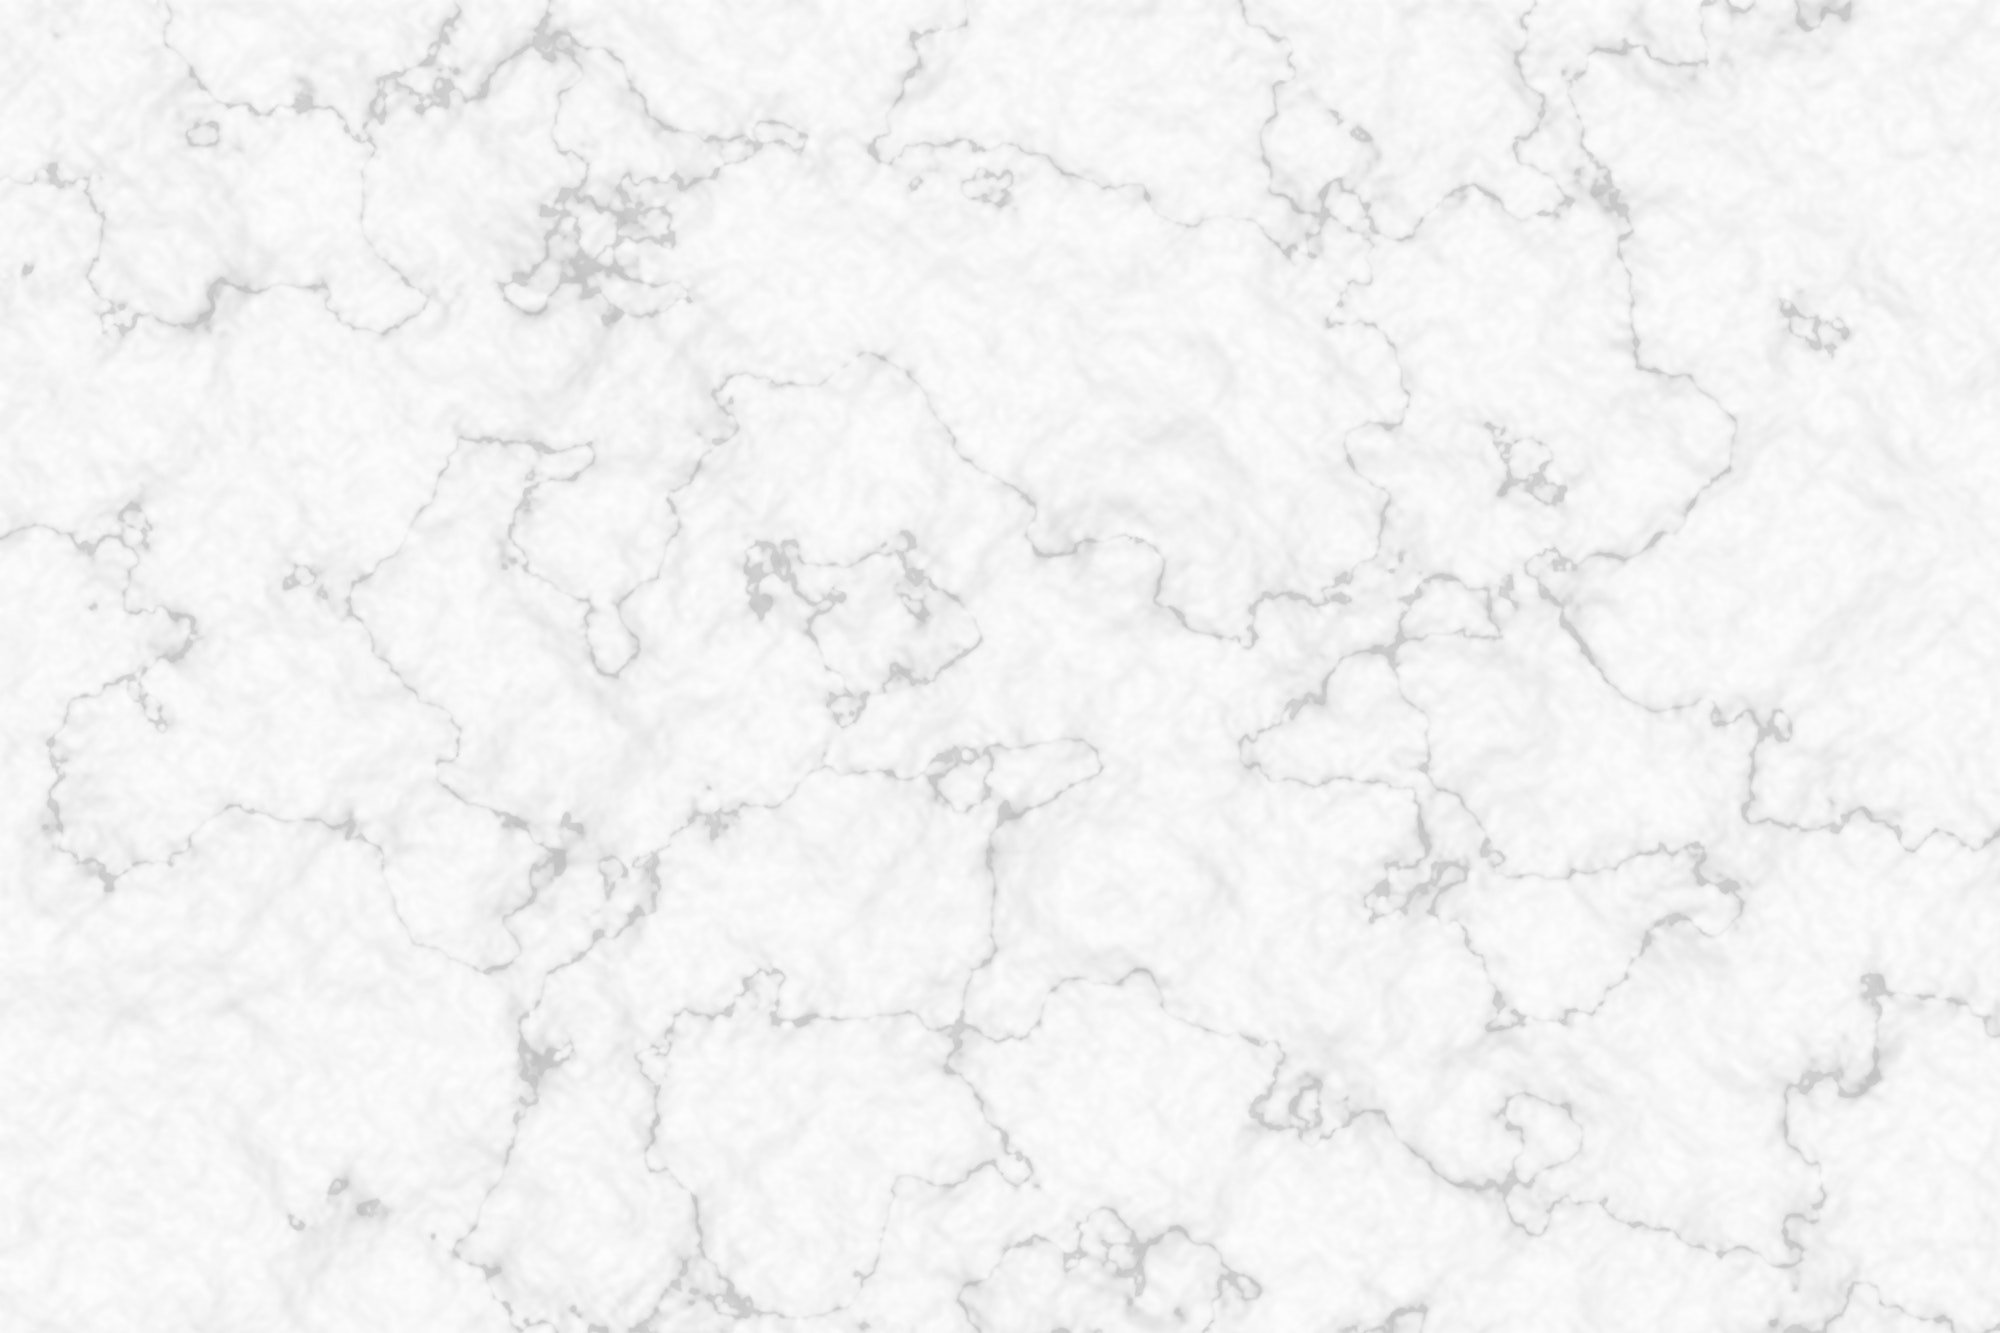 abstract gray color marble granite flooring background